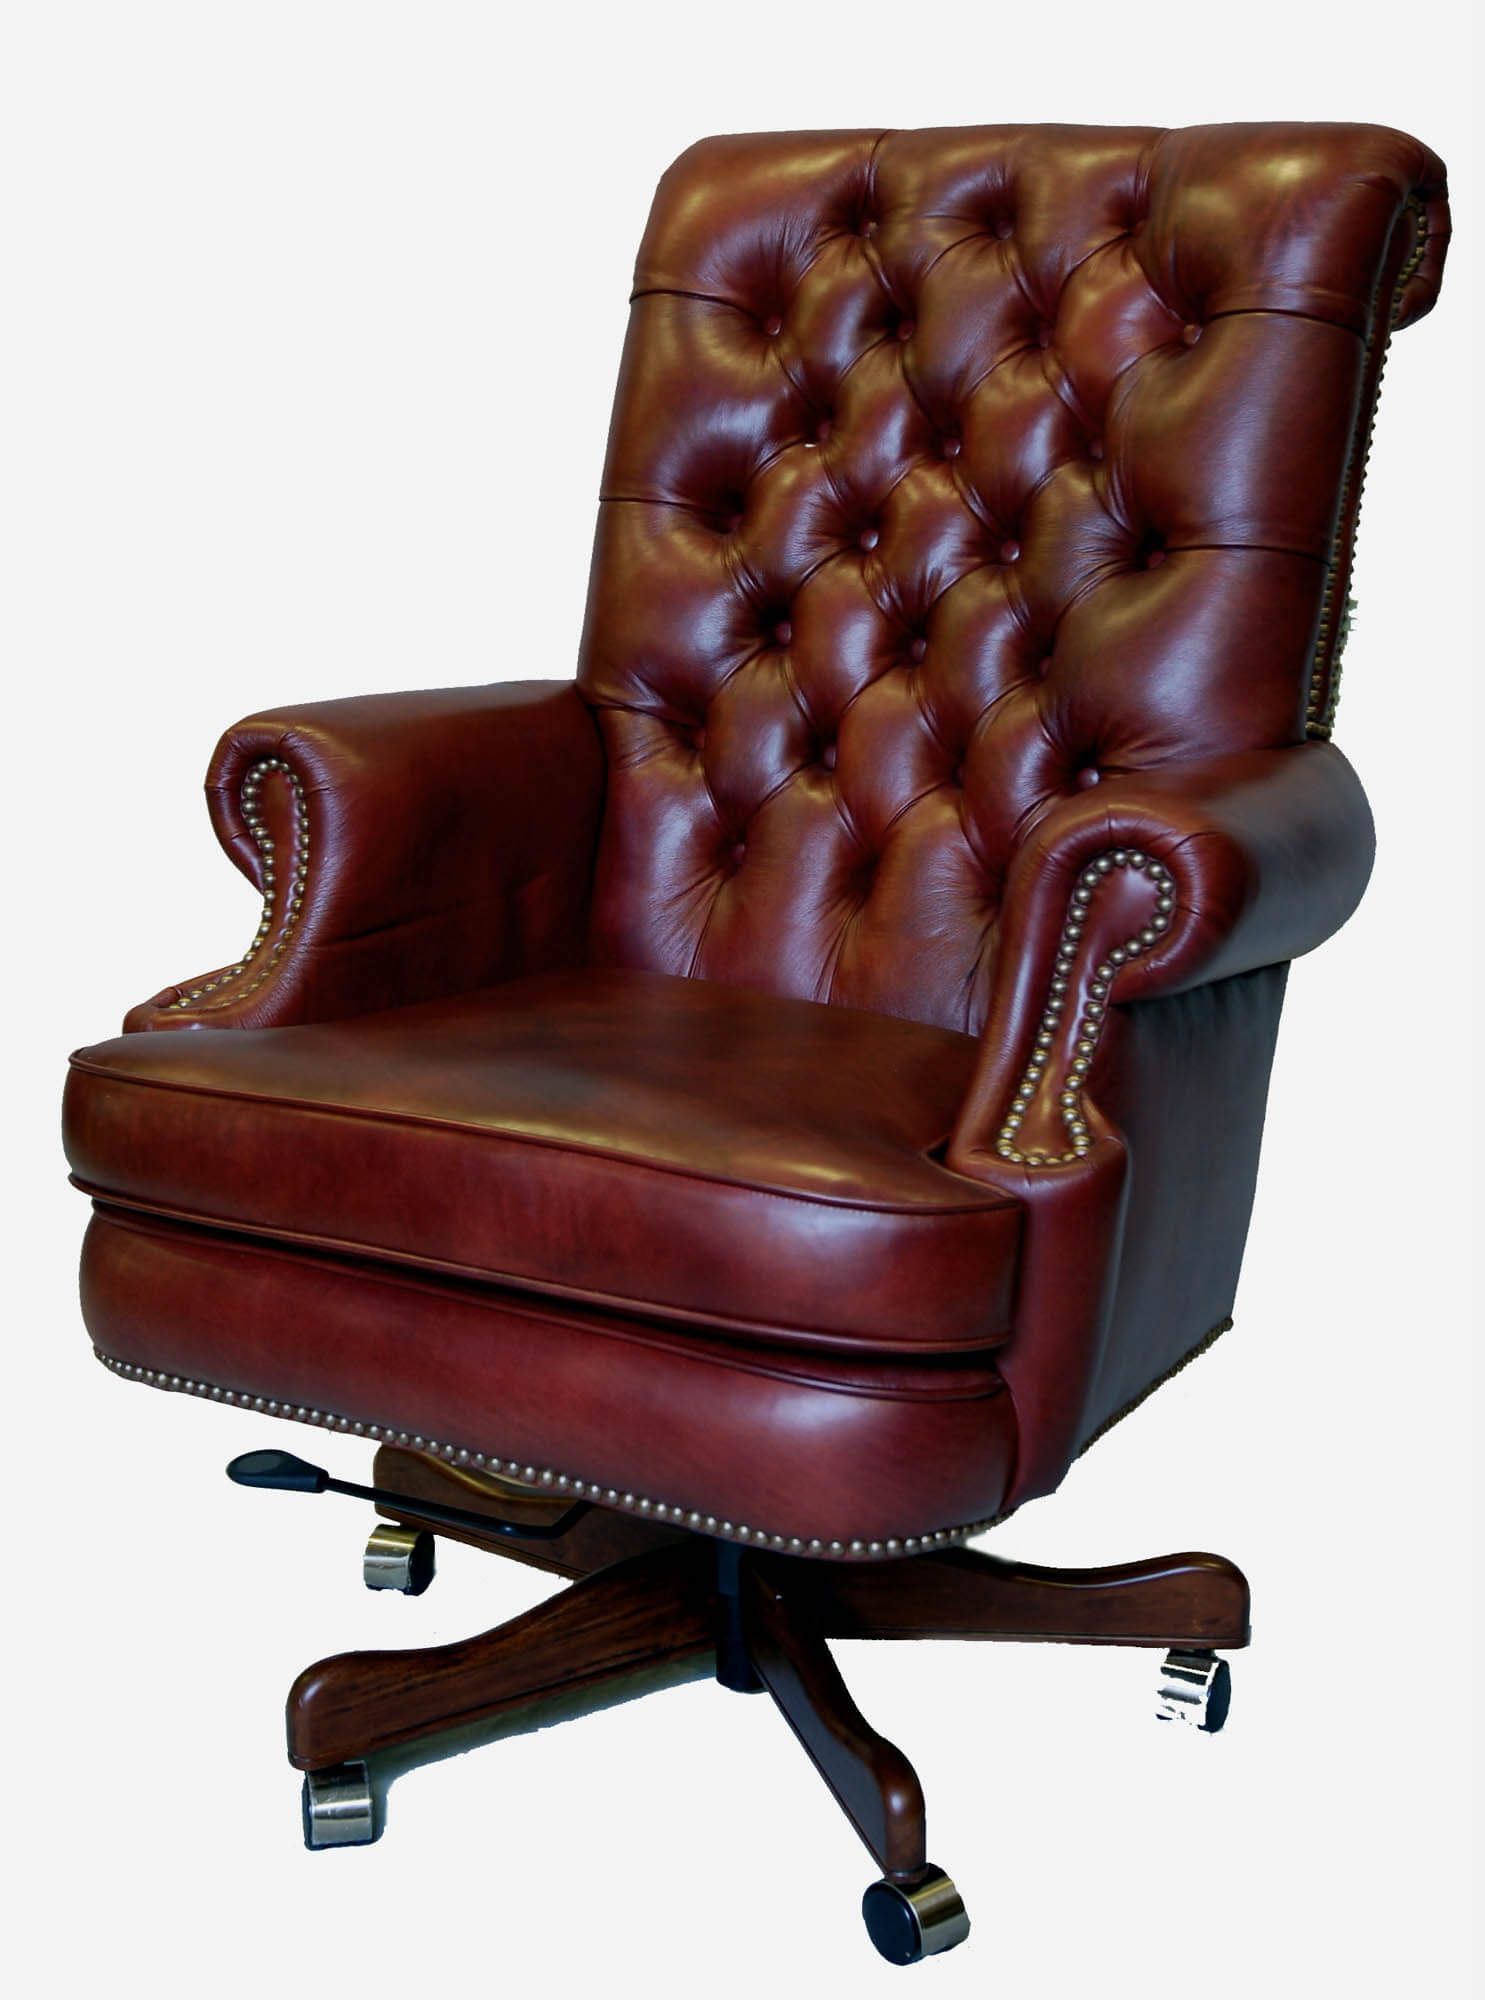 ca p chairs back office tygerclaw chair canada executive leather large high bonded